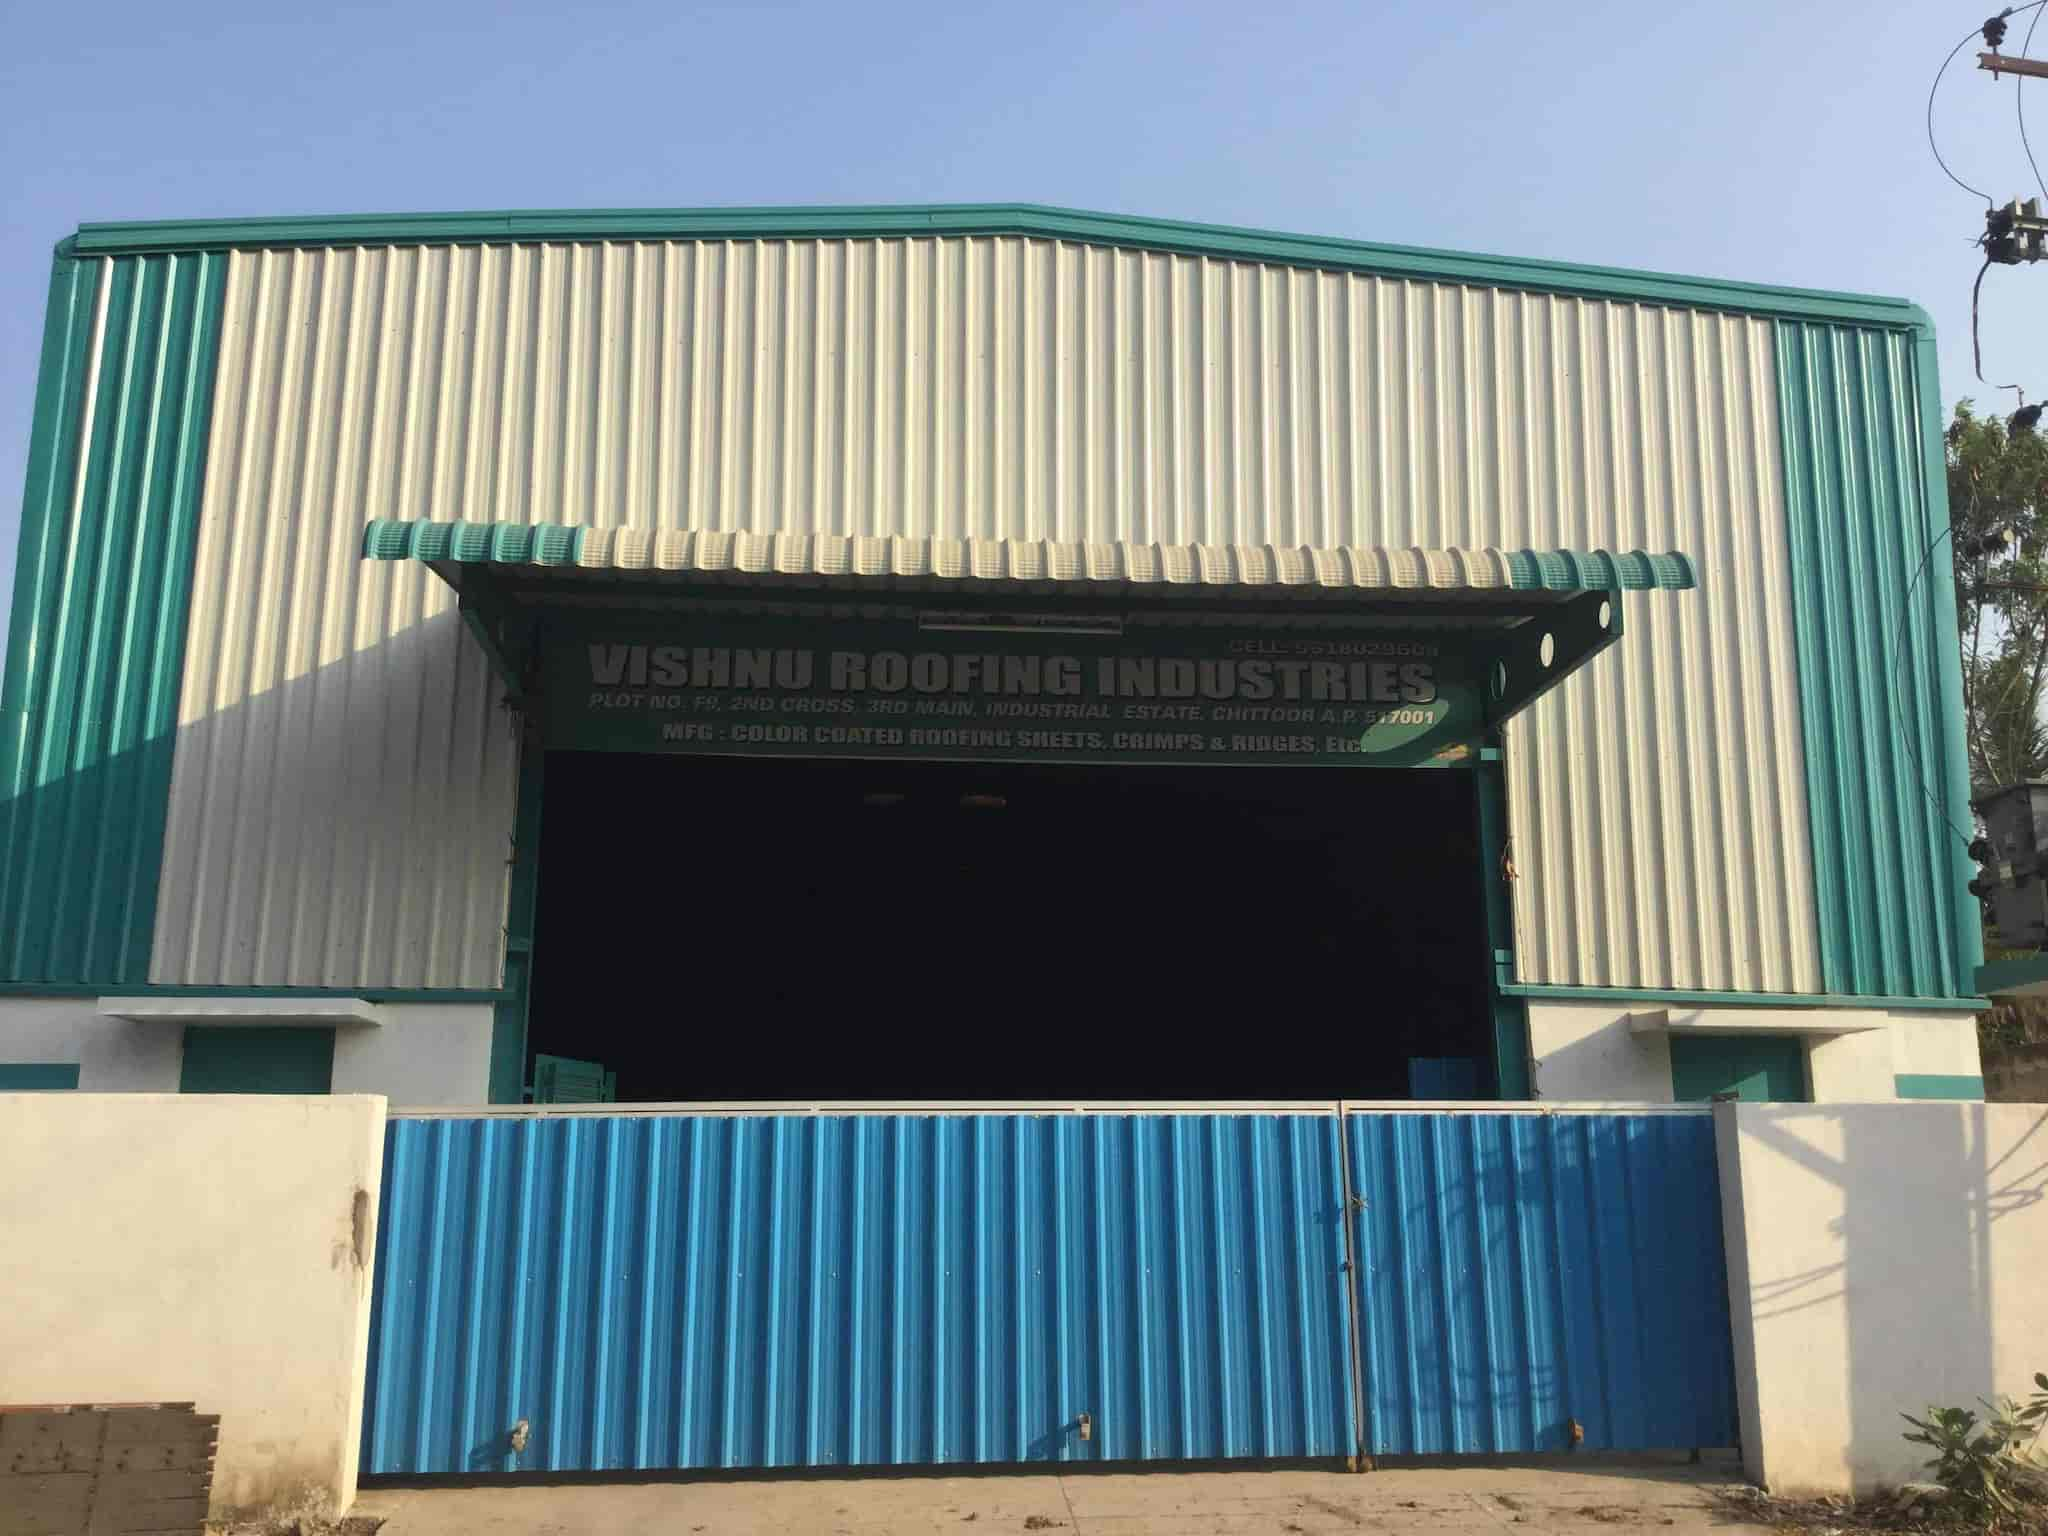 Top 30 Roofing Sheets Manufacturers In Chittoor À¤° À¤« À¤— À¤¶ À¤Ÿ À¤®à¤¨ À¤«à¤• À¤šà¤°à¤° À¤¸ À¤š À¤¤ À¤¤ À¤° Best Metal Roofing Sheets Makers Justdial